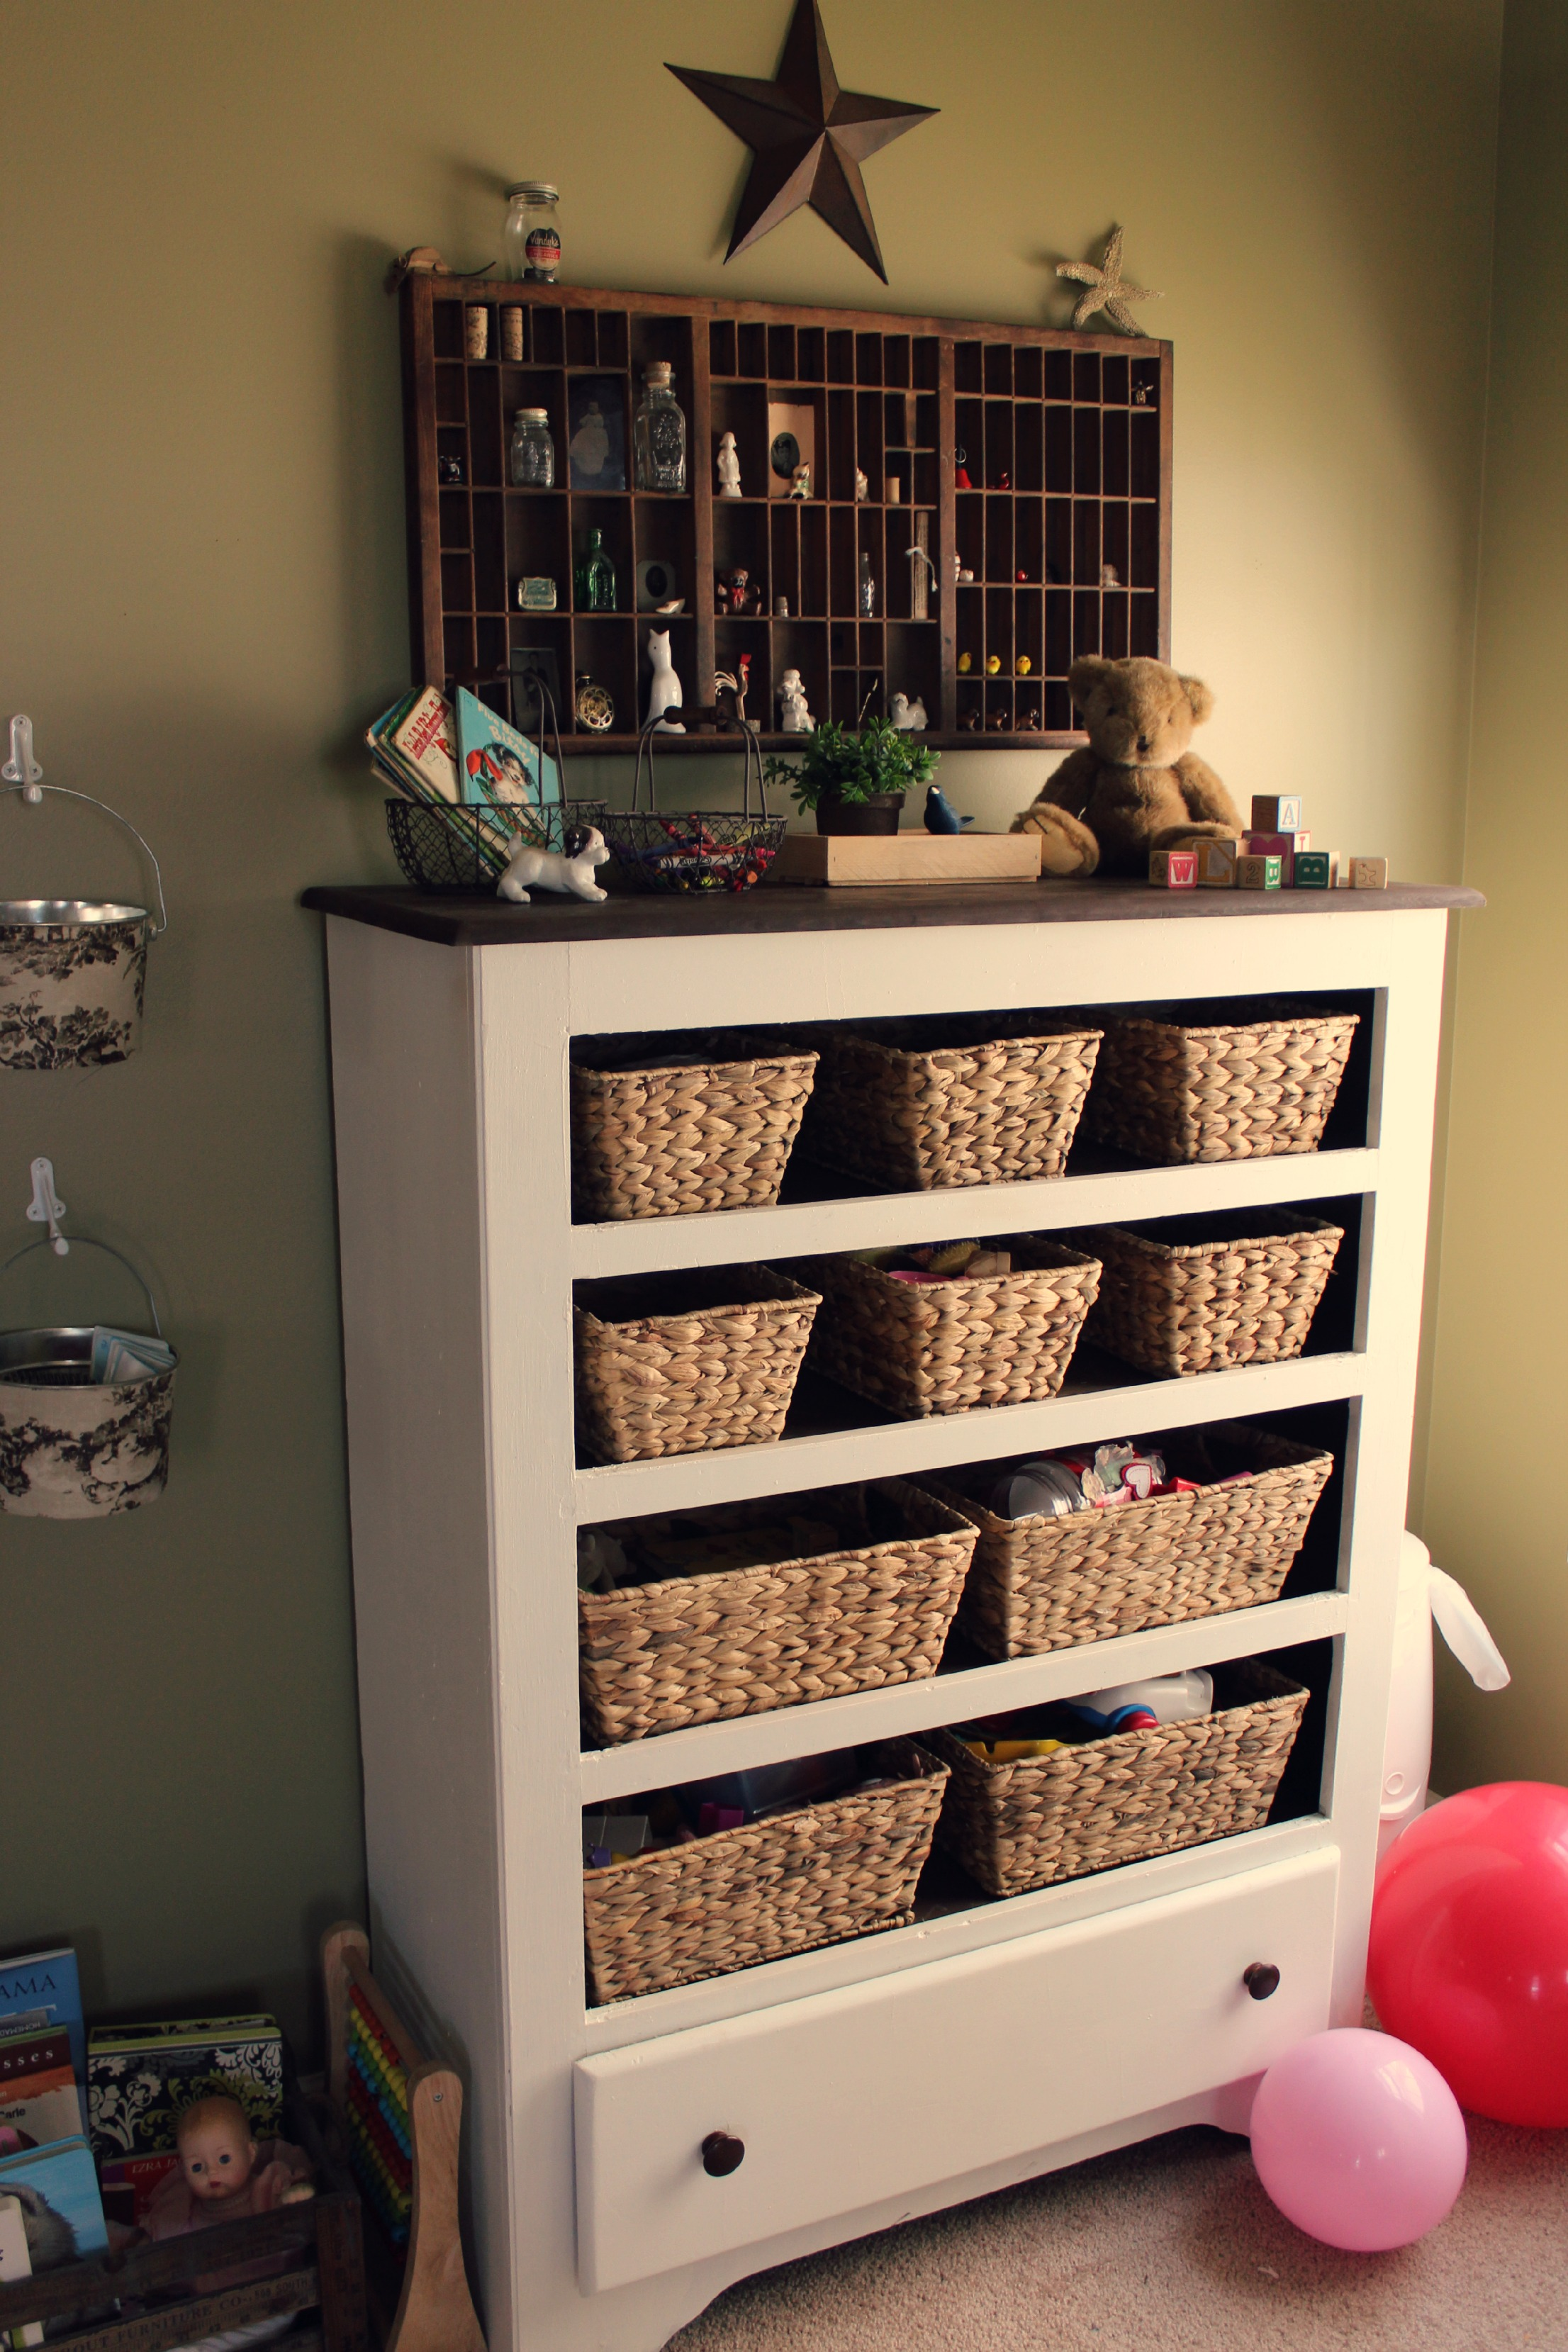 dresser full of baskets